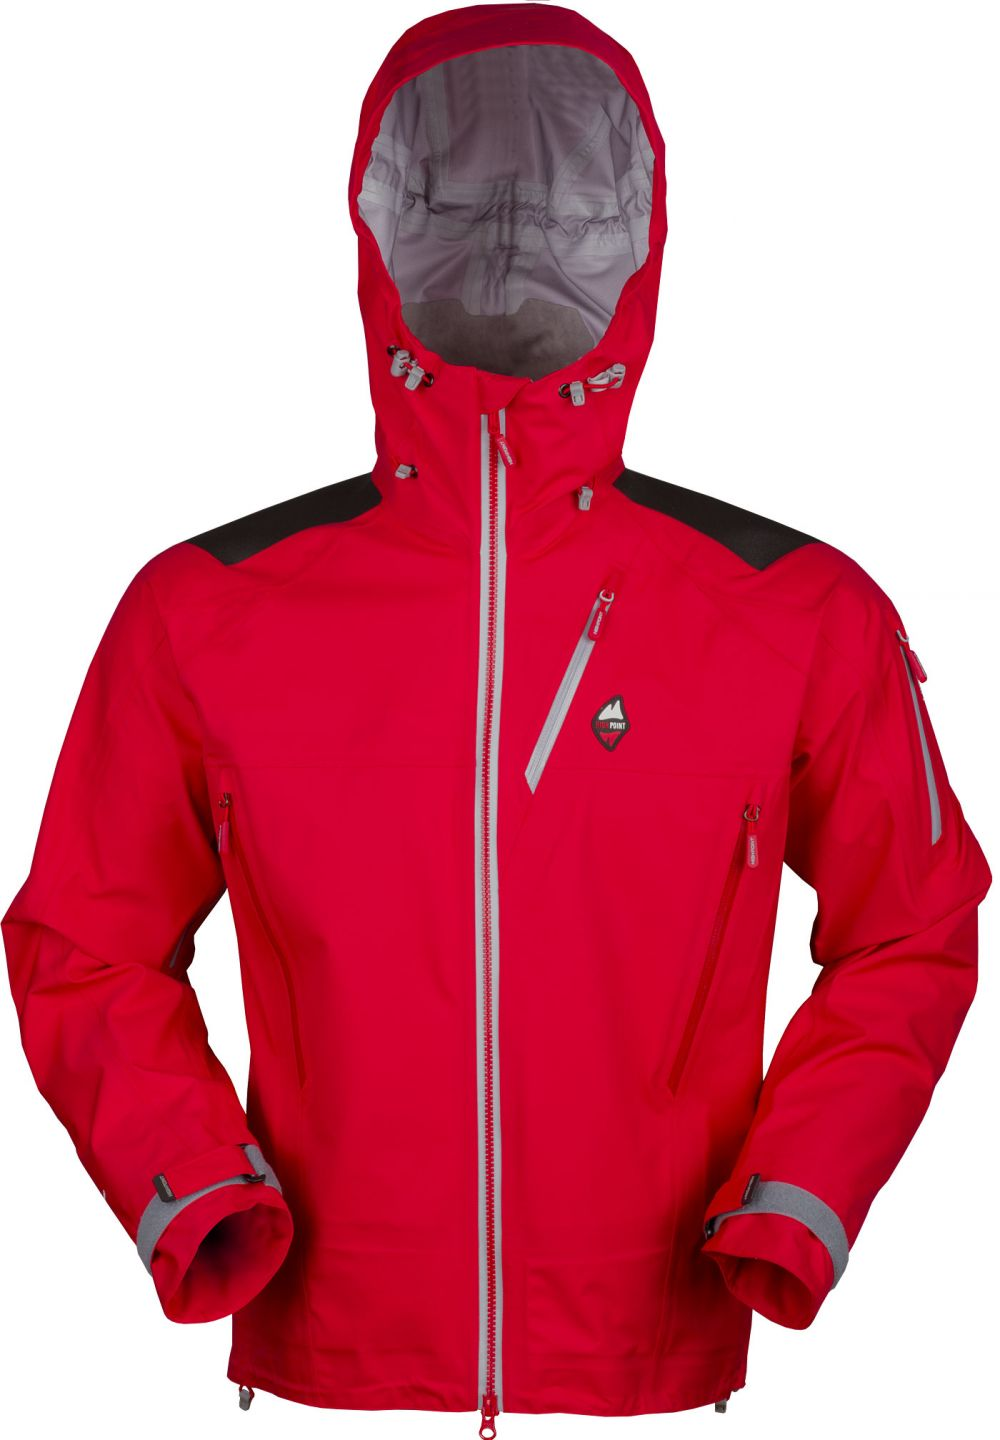 4868f4739e Protector-4.0-Jacket-red-grey-zip